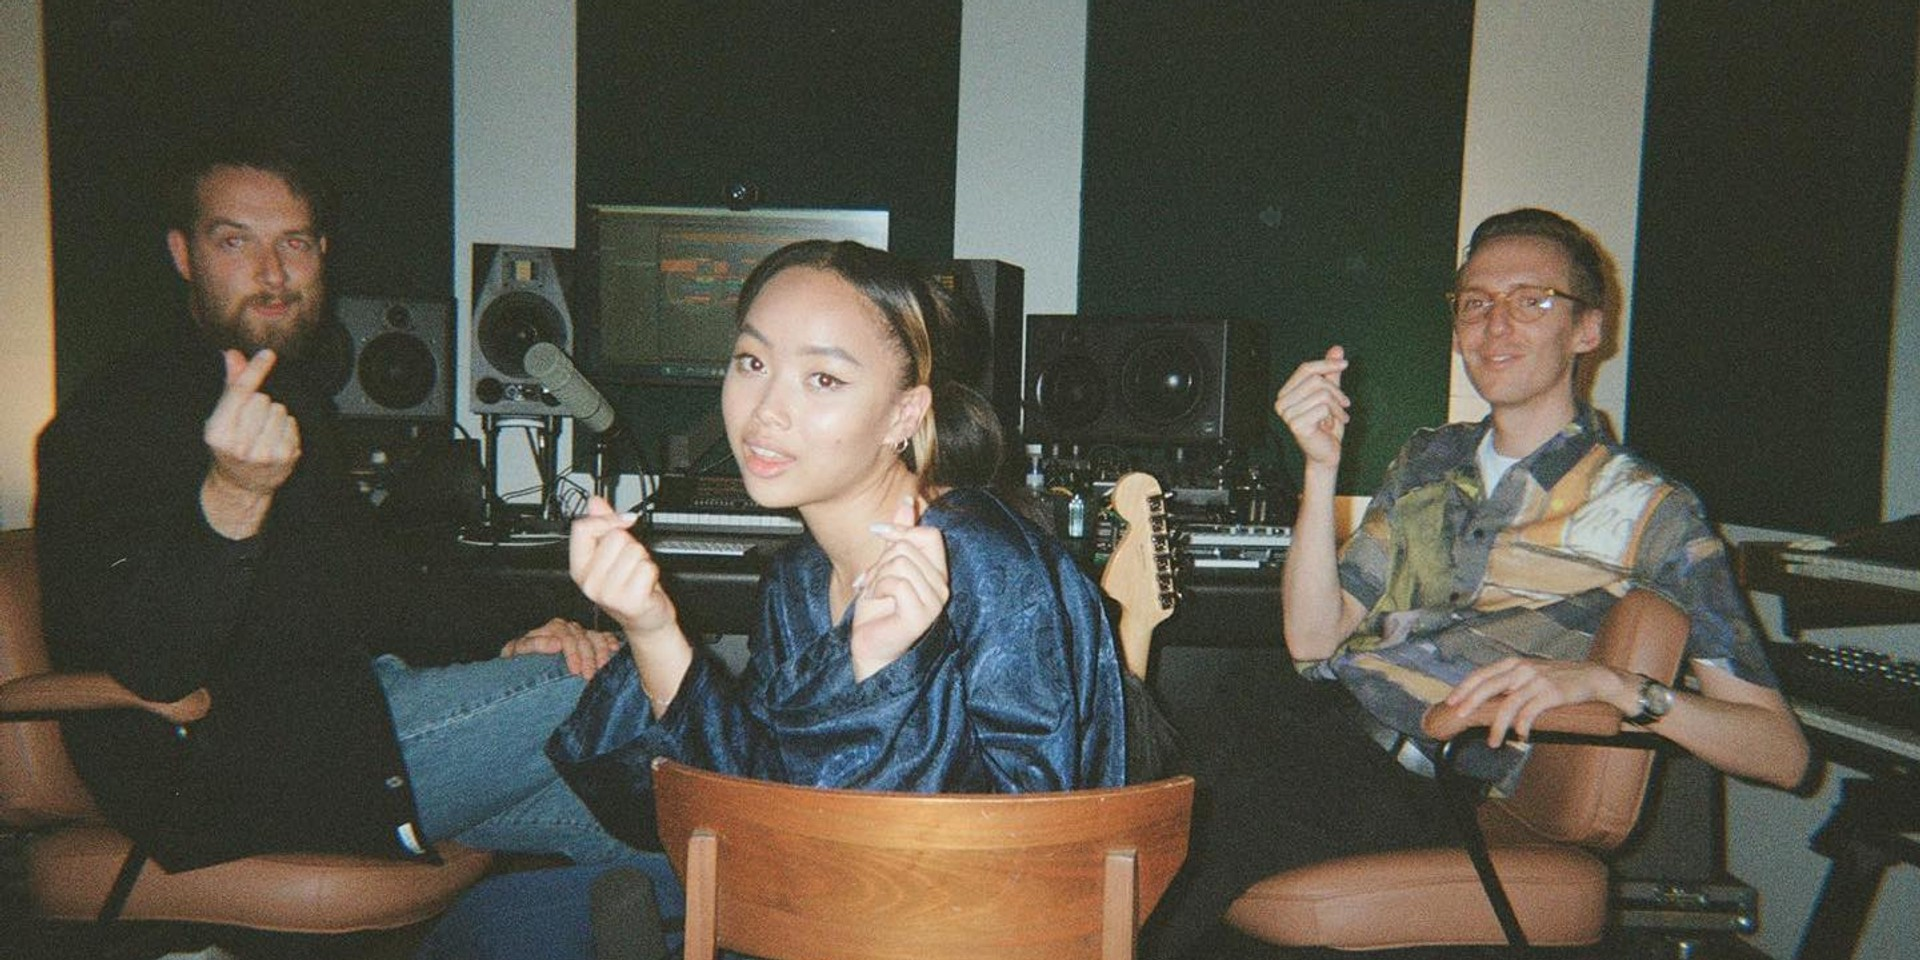 Feel '1,000,000 x better' with HONNE and Griff's collaborative single – listen